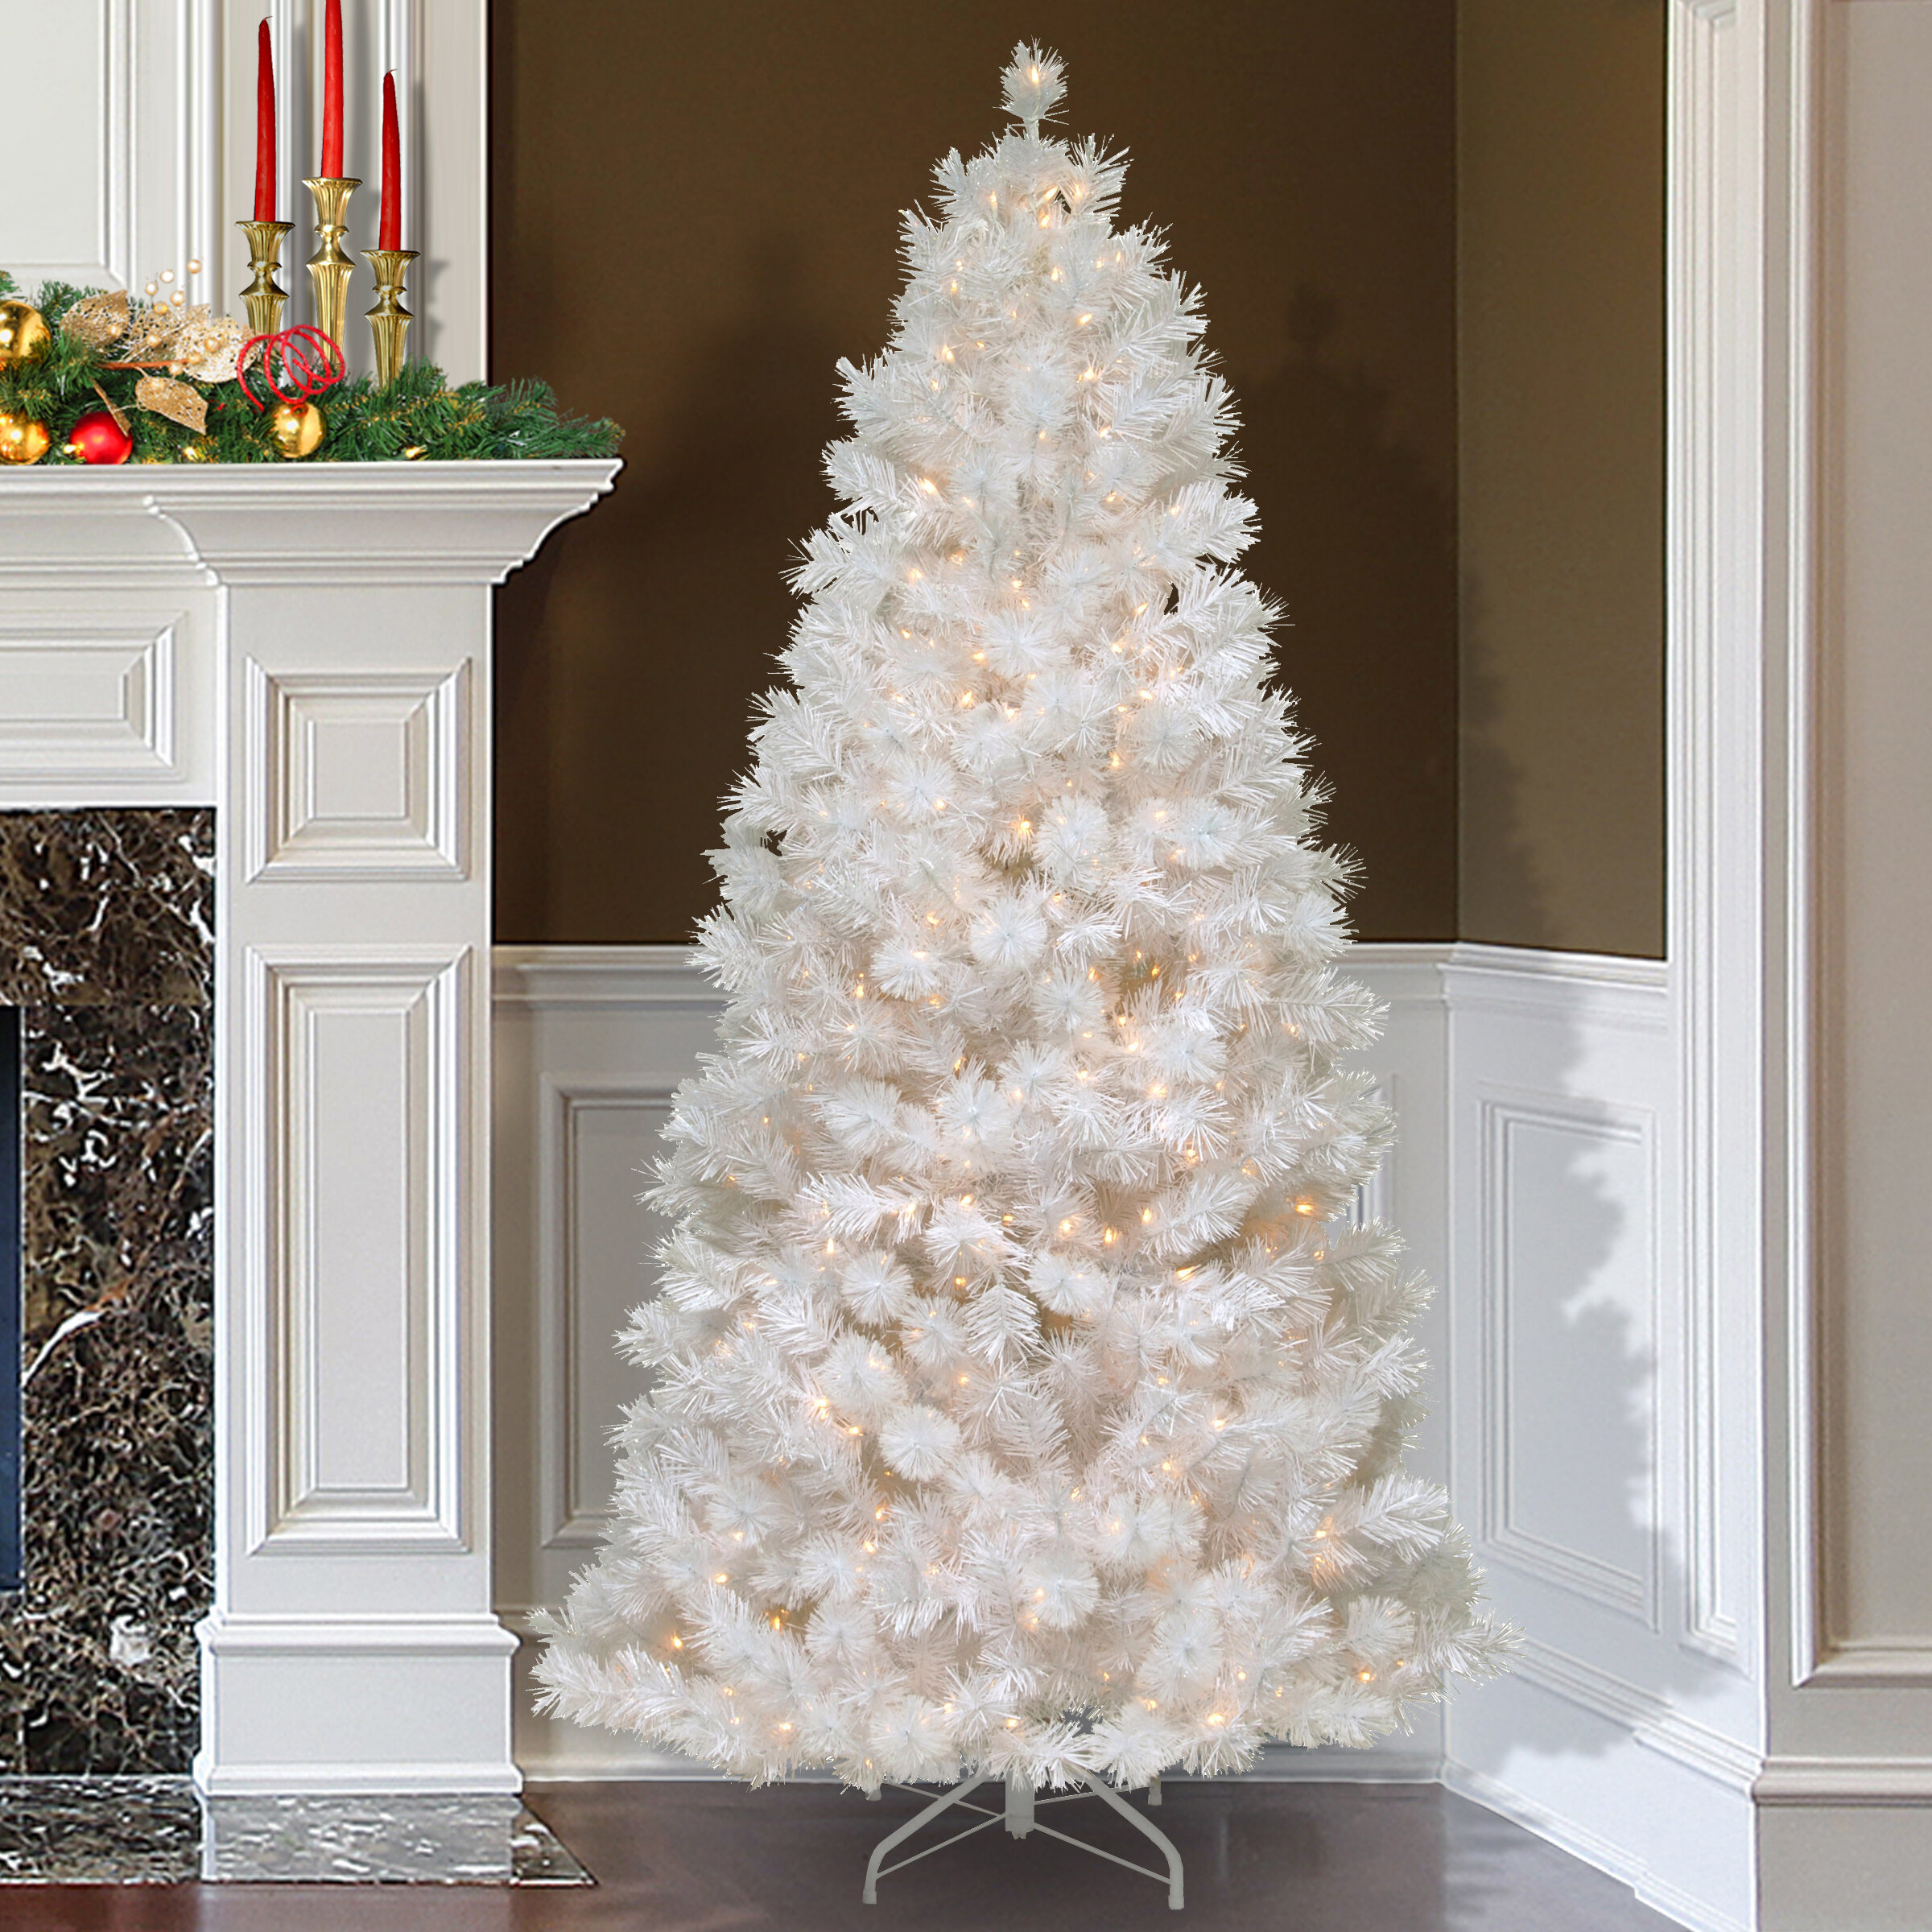 75 white grande slim artificial christmas tree with 500 pre lit clear lights with stand - White Pre Lit Christmas Trees